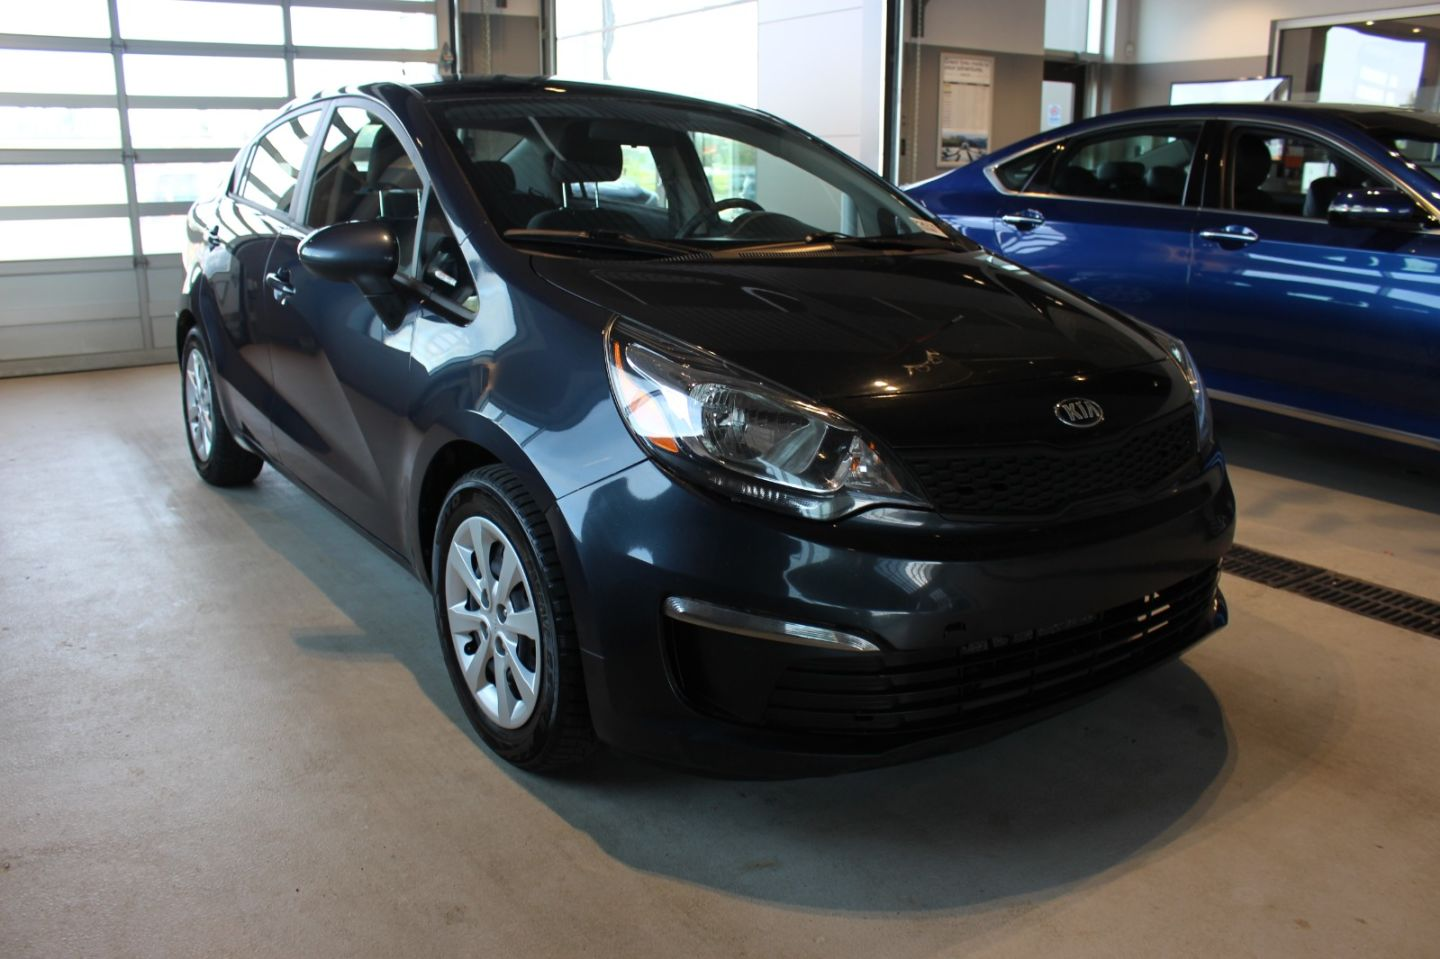 2016 Kia Rio LX for sale in Spruce Grove, Alberta